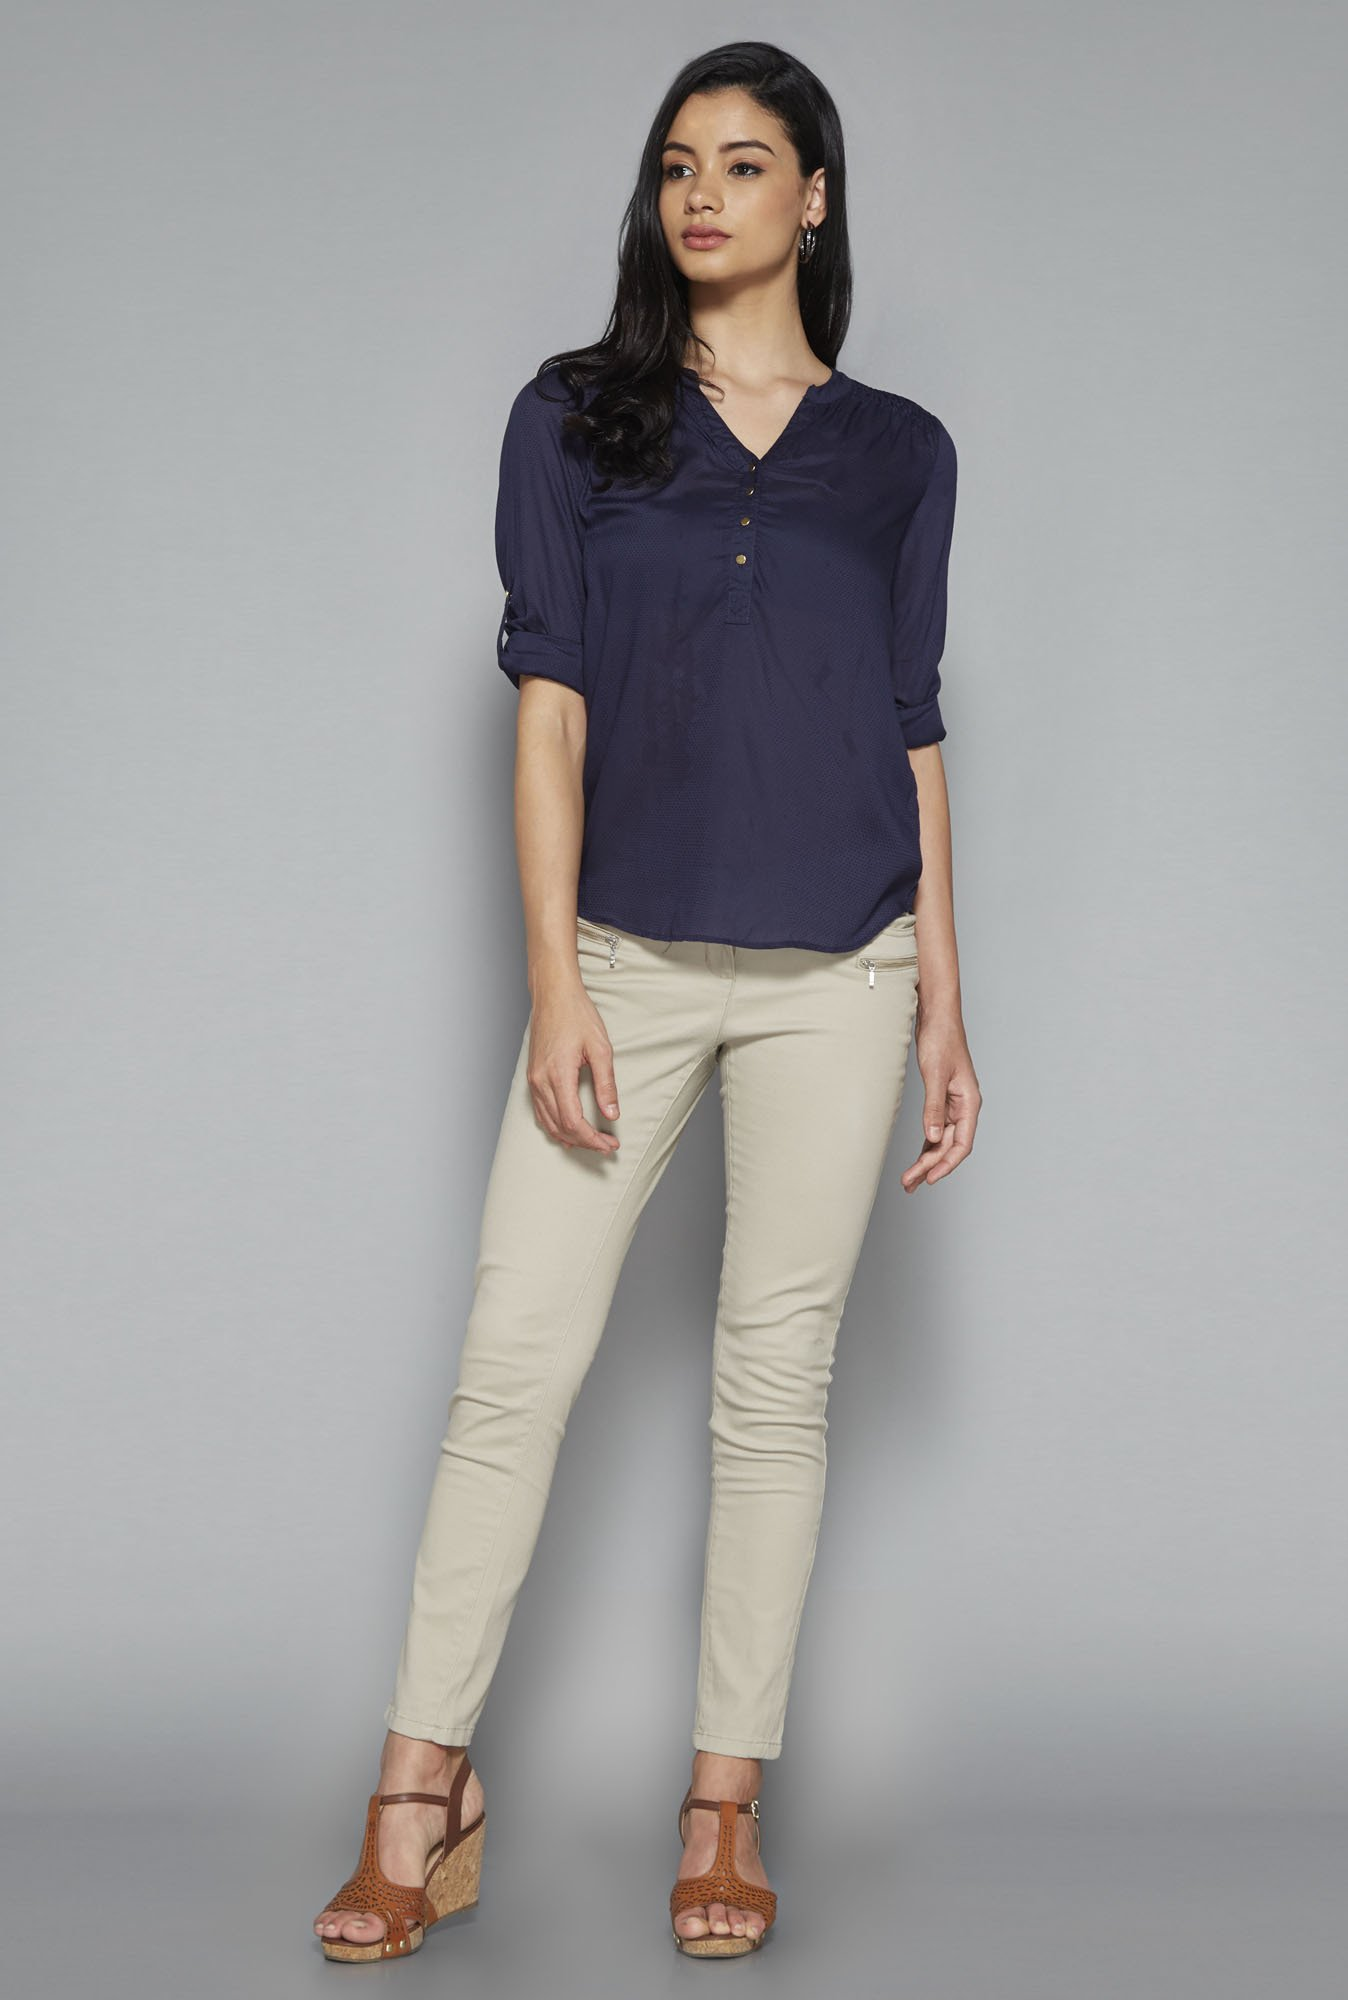 LOV by Westside Navy Self Print Seira Blouse